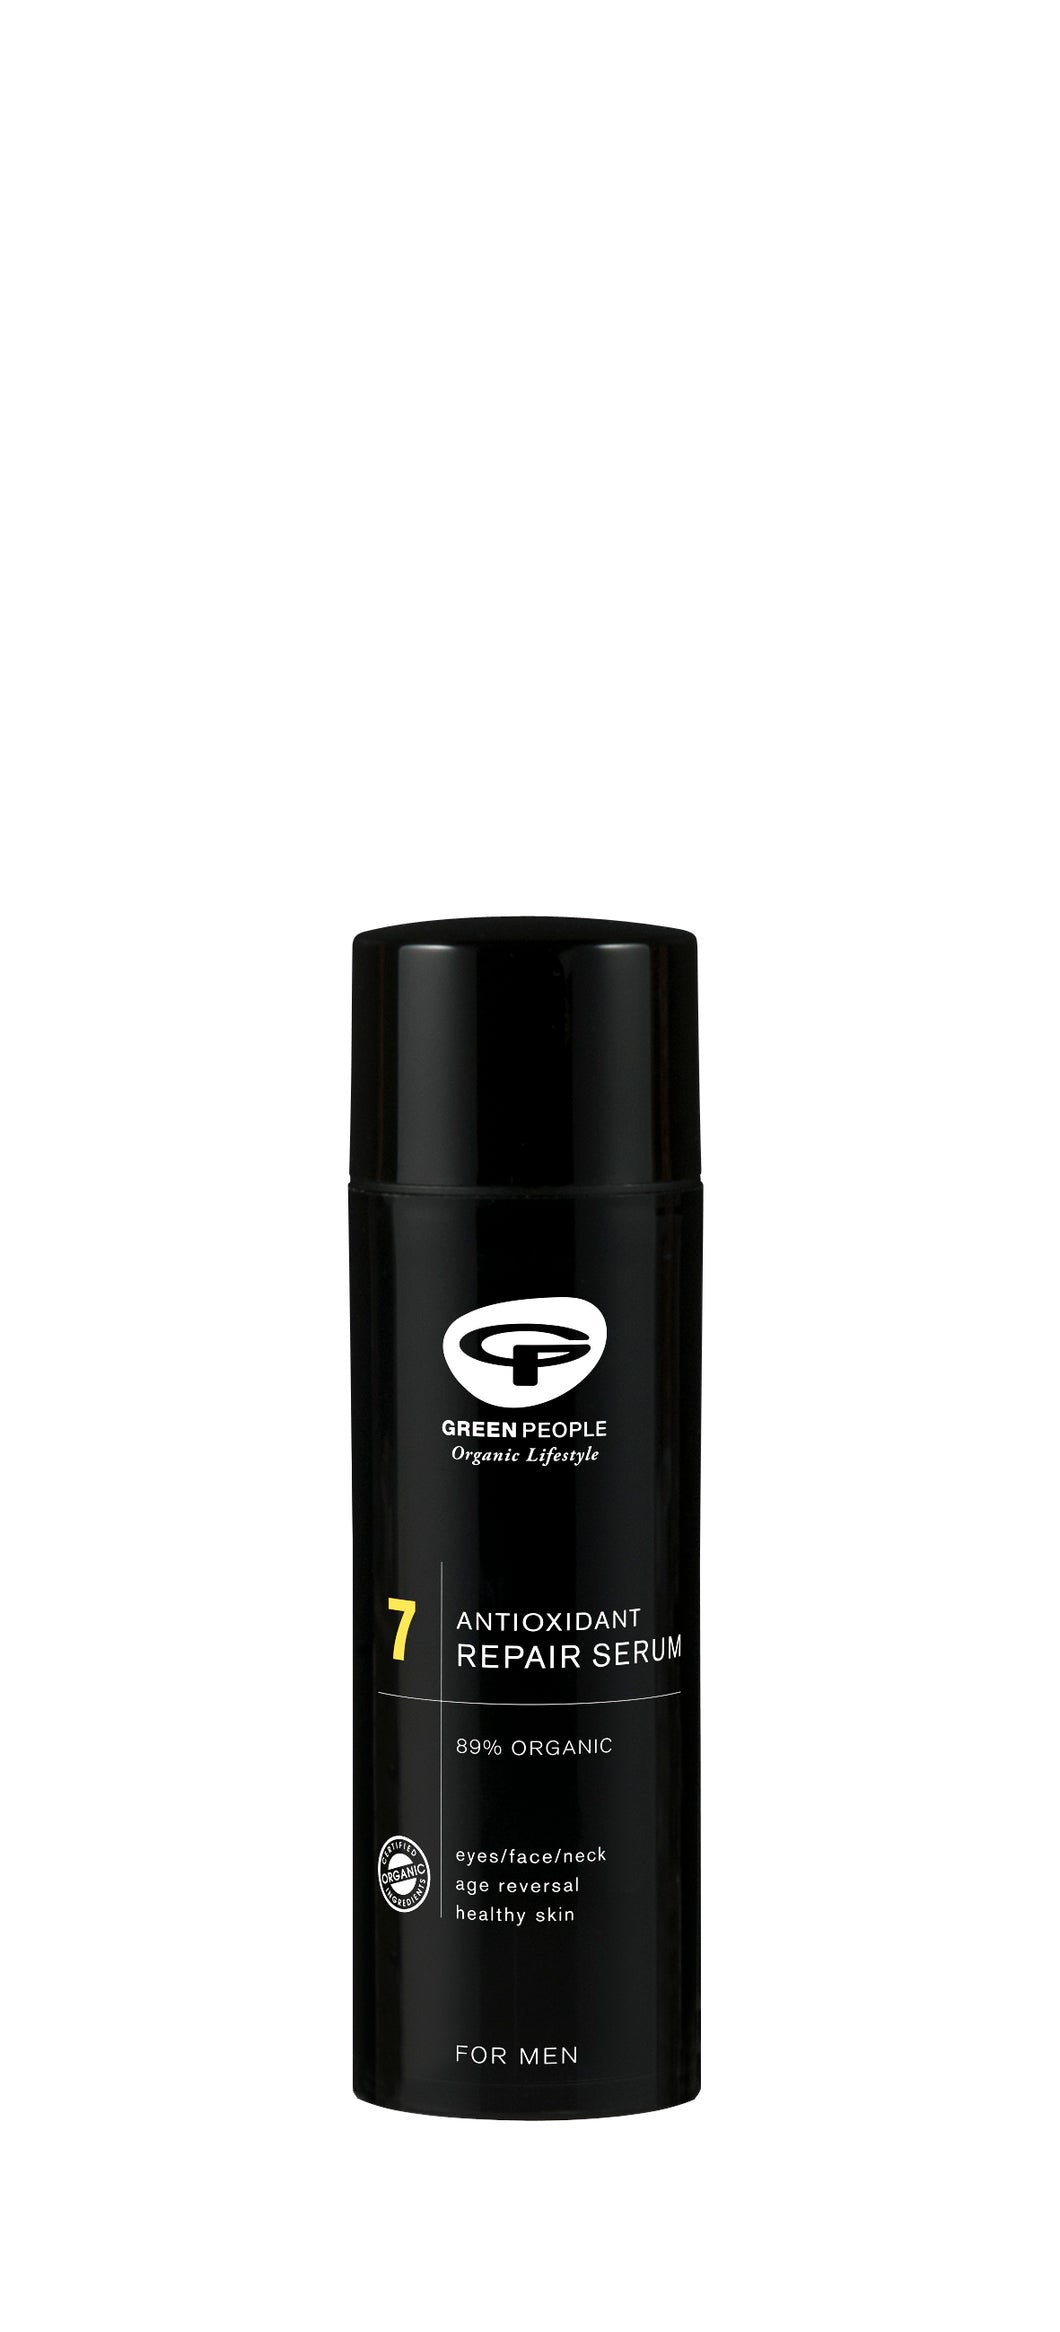 Green People No. 7 Antioxidant Repair